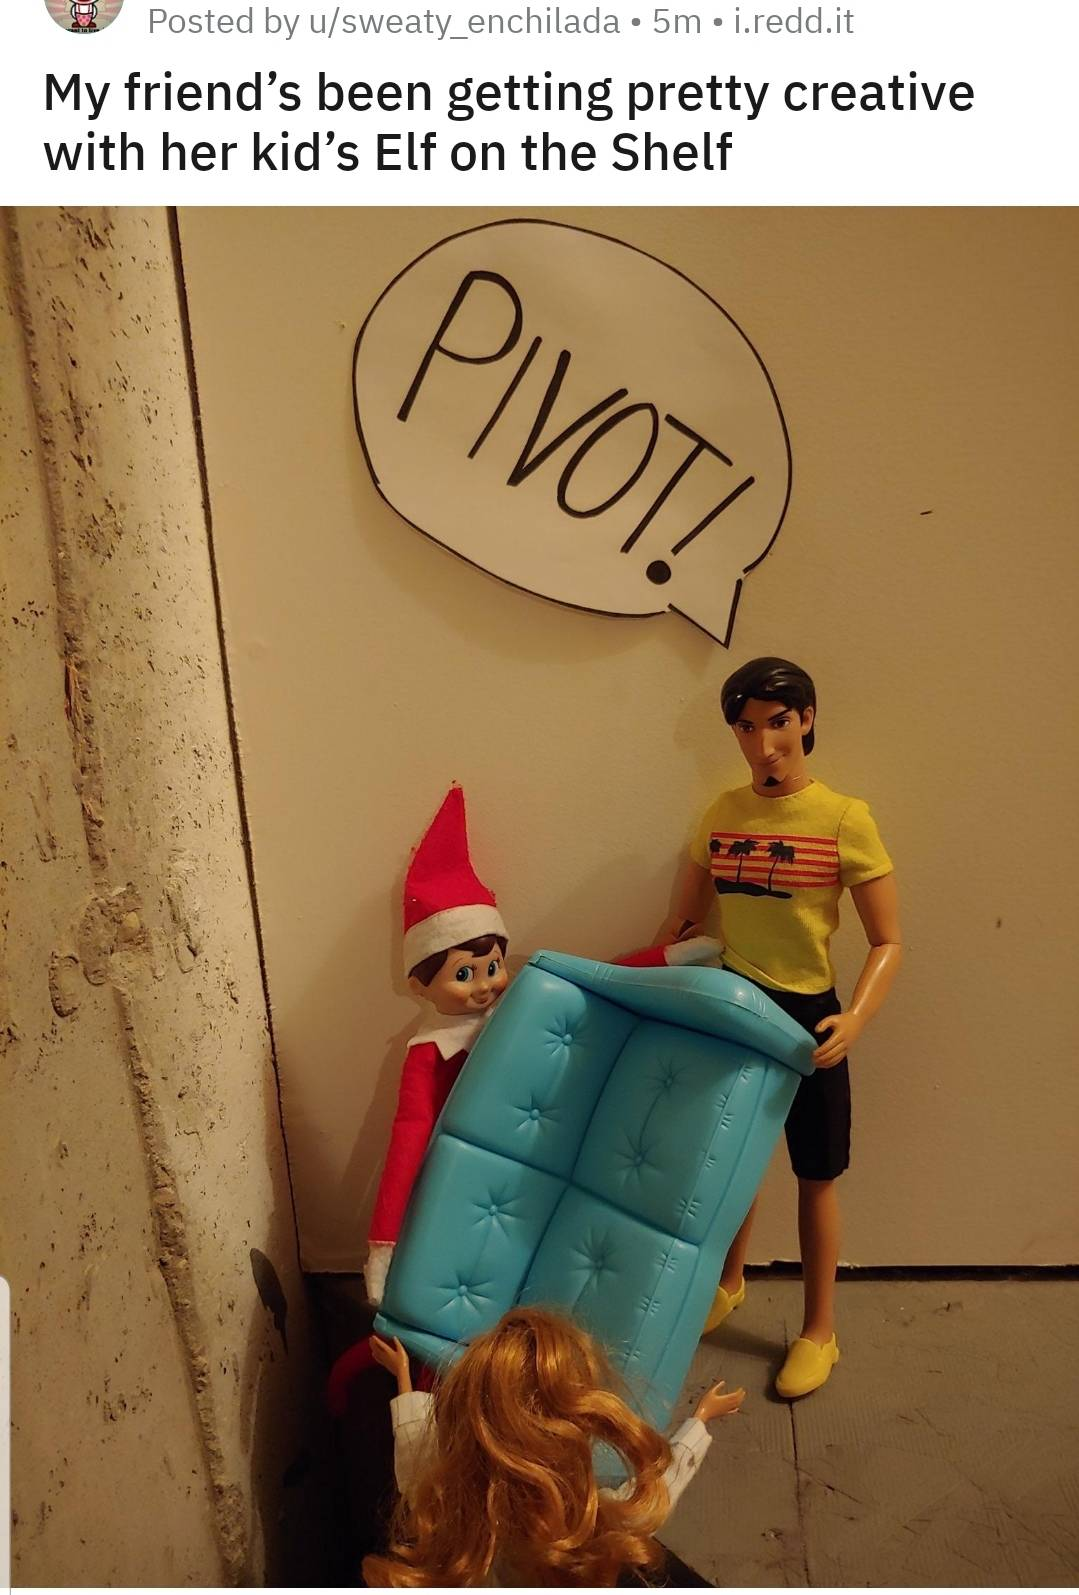 elf and ross moving a couch